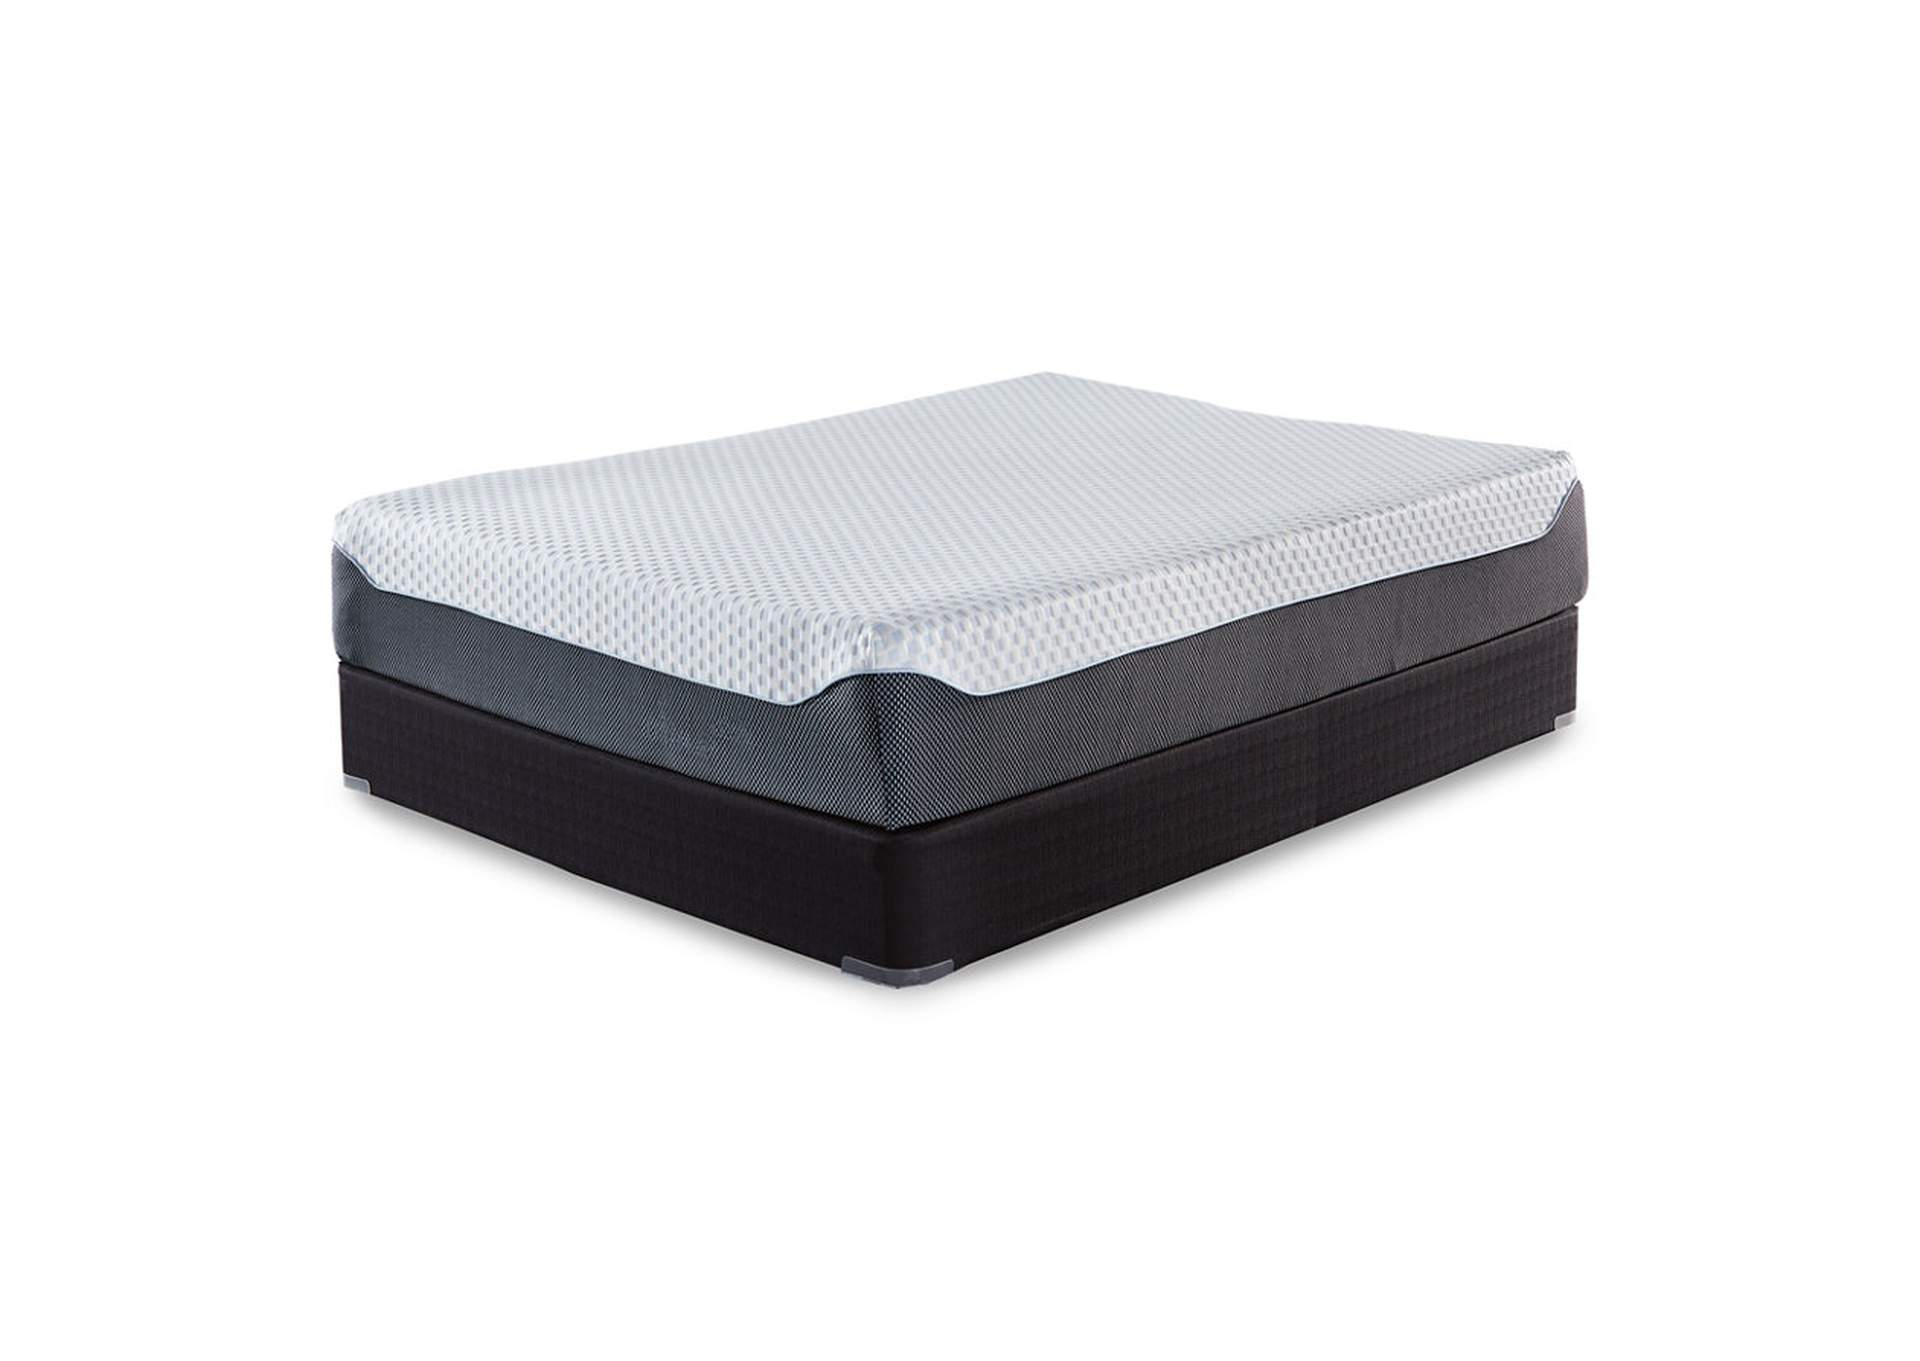 12 Inch Chime Elite Memory Foam Twin Mattress,Sierra Sleep by Ashley